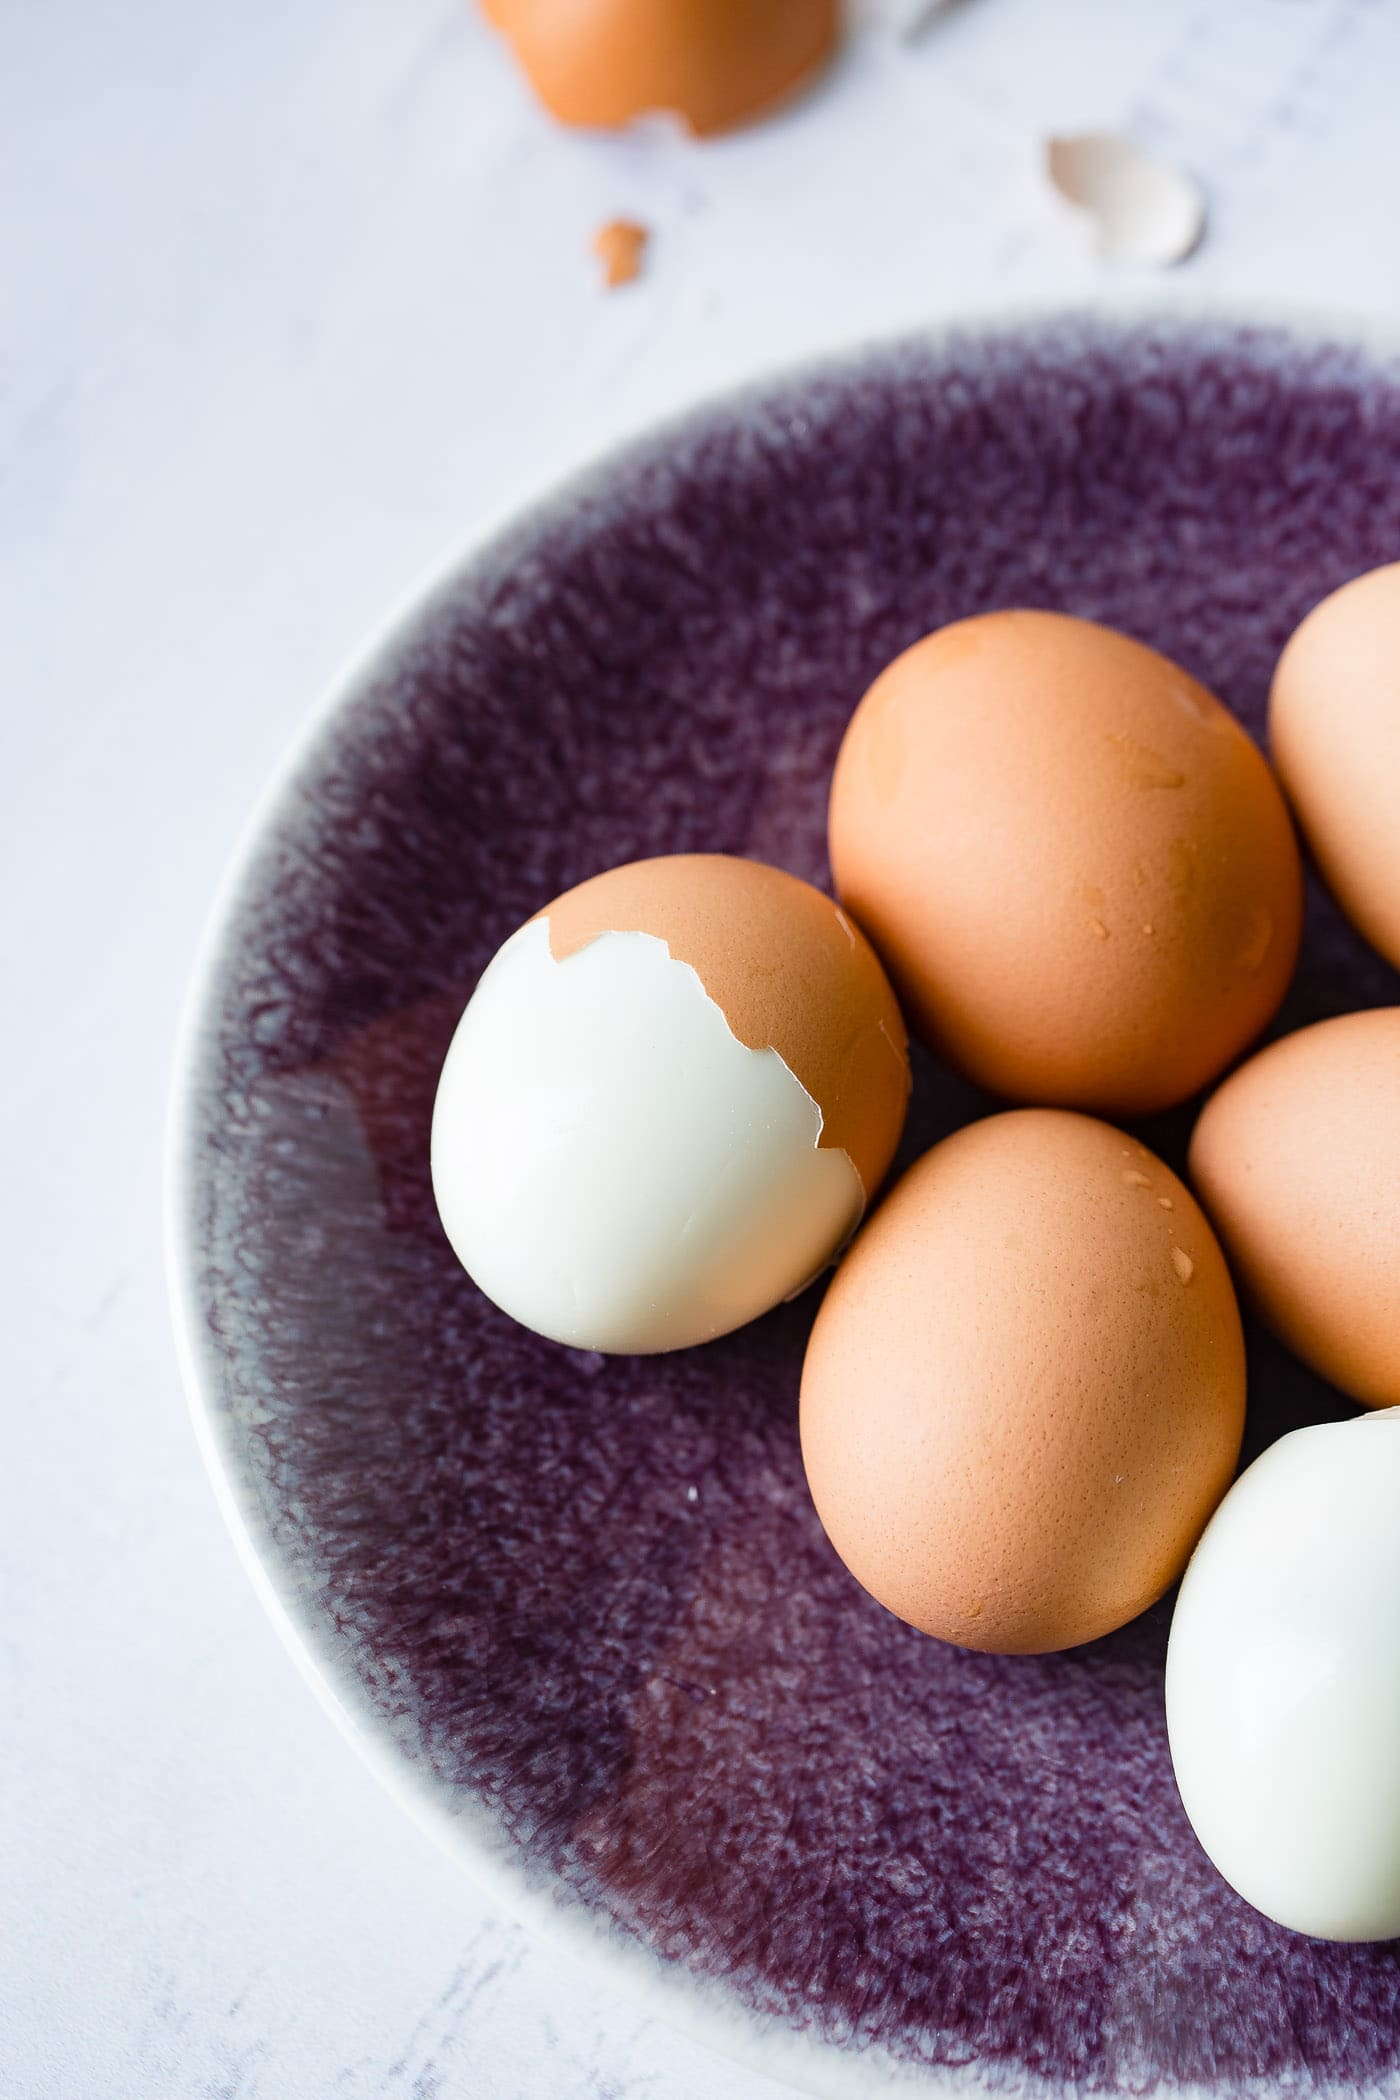 A plate with 6 brown hard boiled eggs. On egg is peeled and another egg is partially peeled.